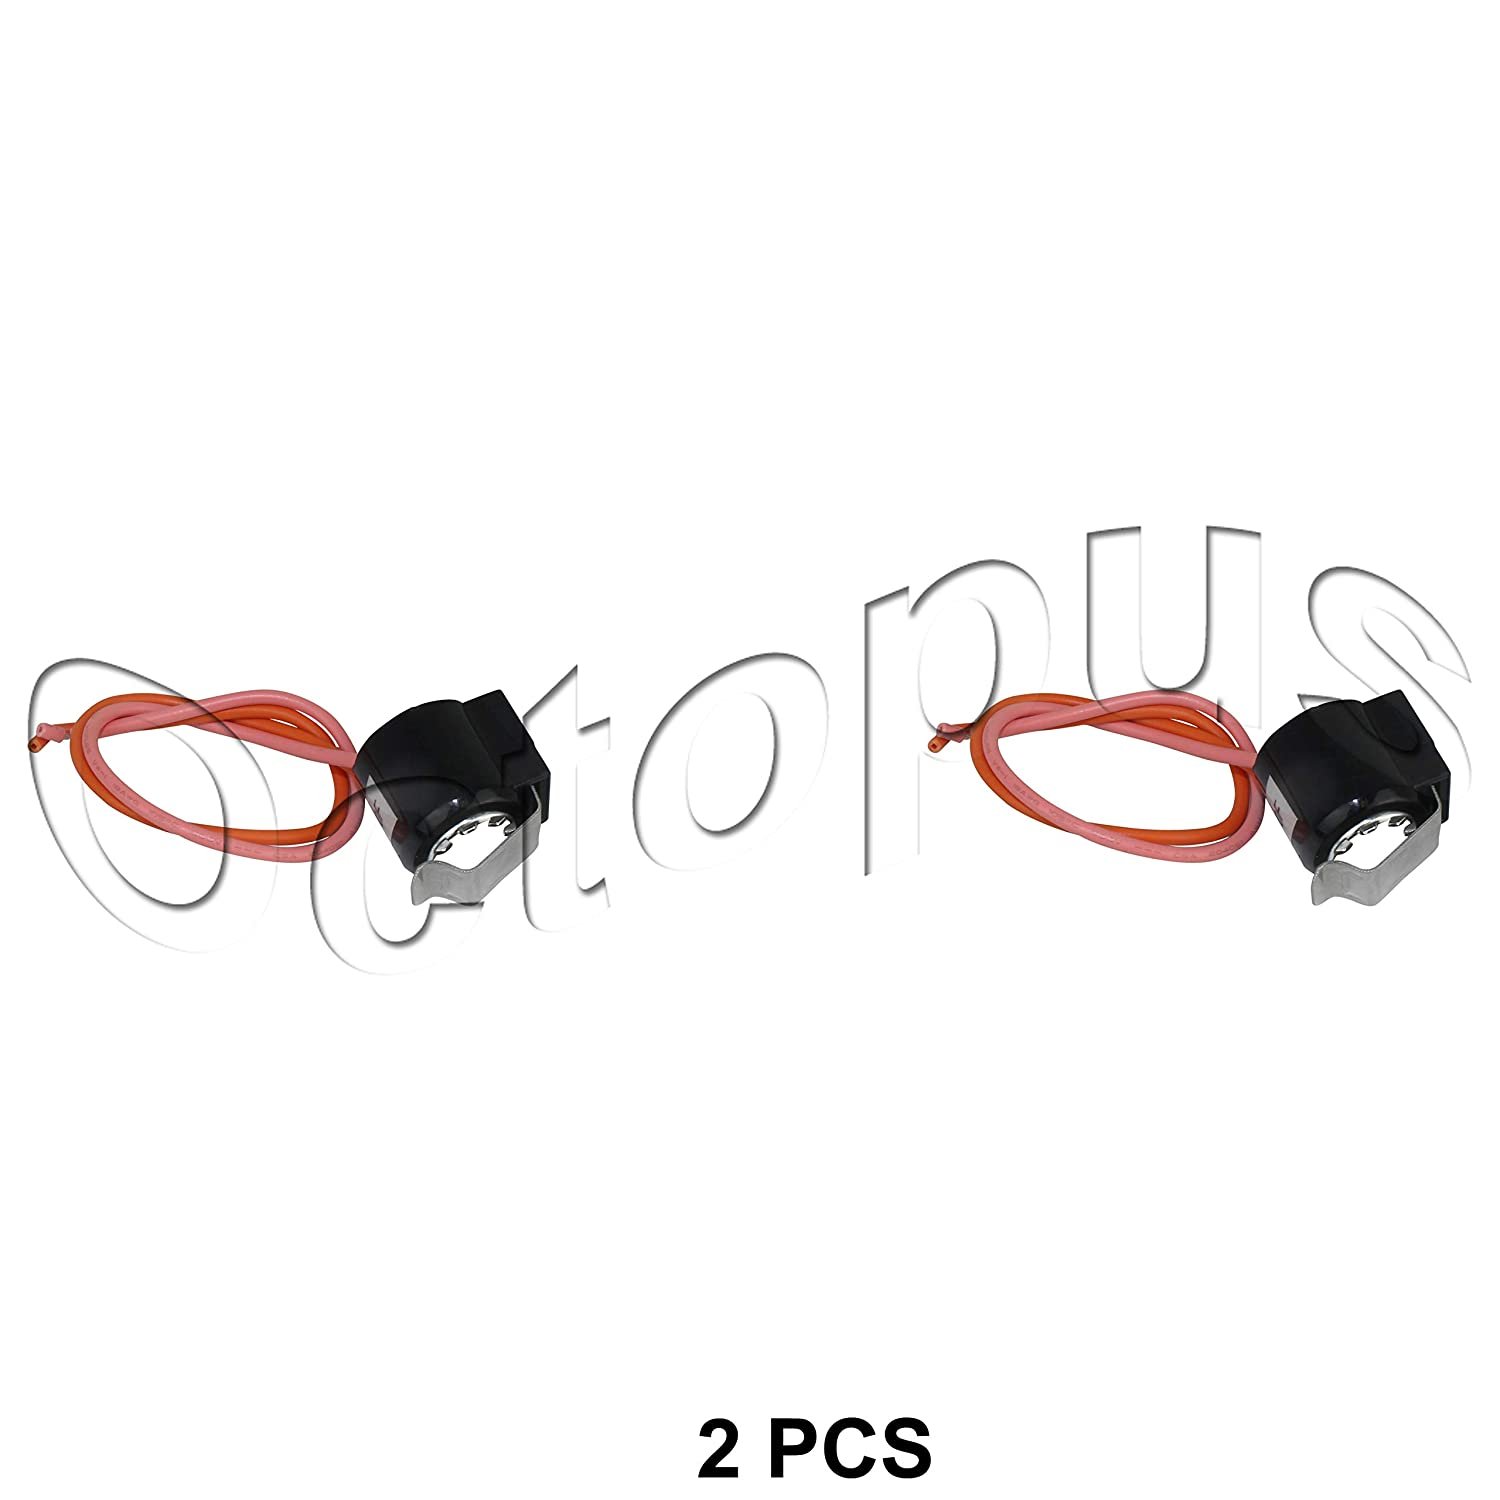 2pcs Refrigerator Defrost Thermostat for GE WR50X10065 AP3796816 PS966762